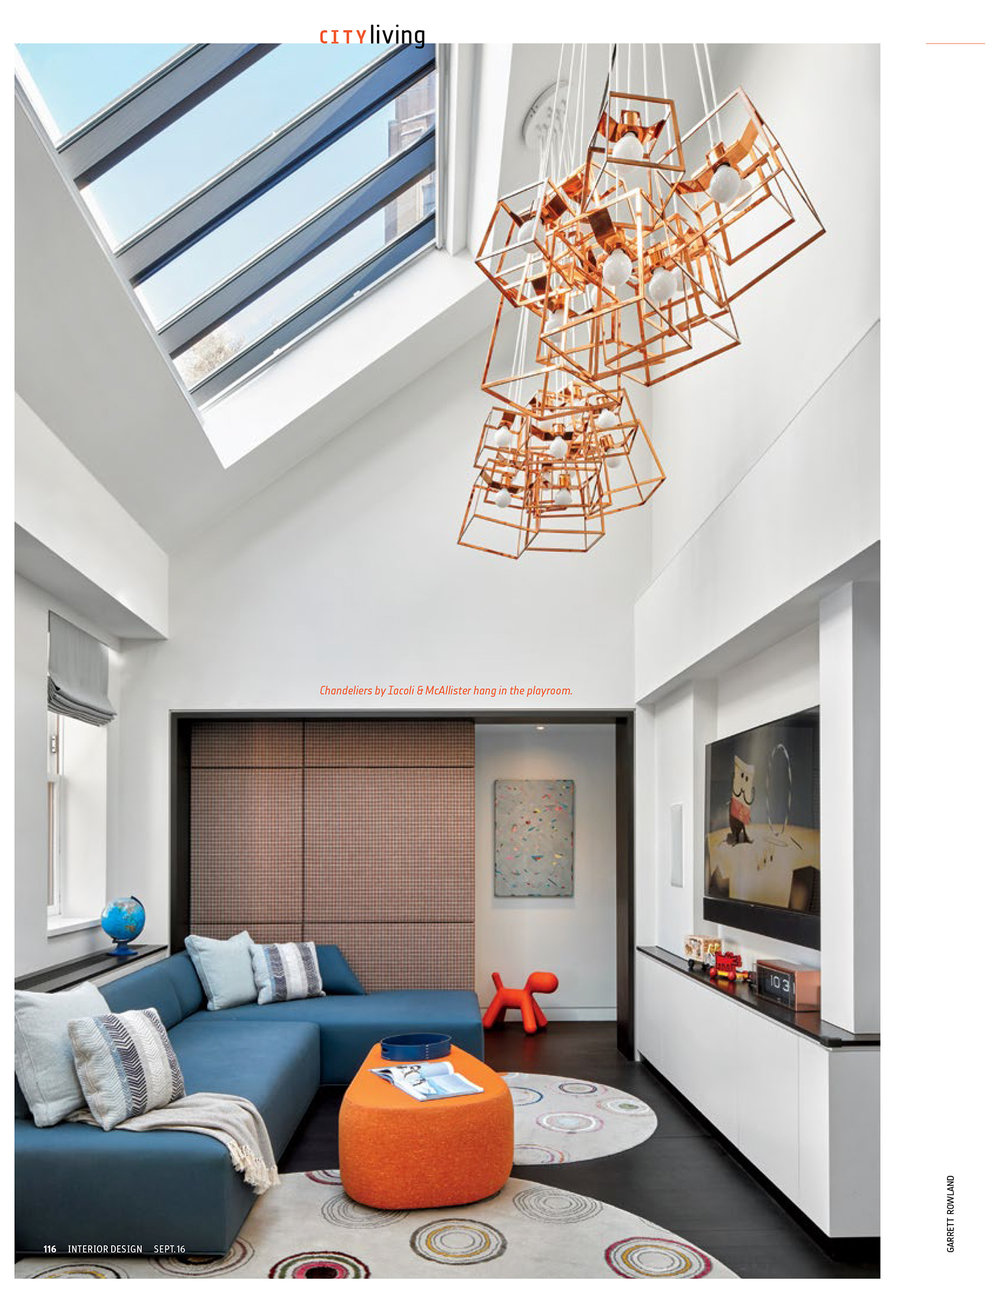 Interior-Design_161-Duane-St_Oct-16_Page-3-3.jpg